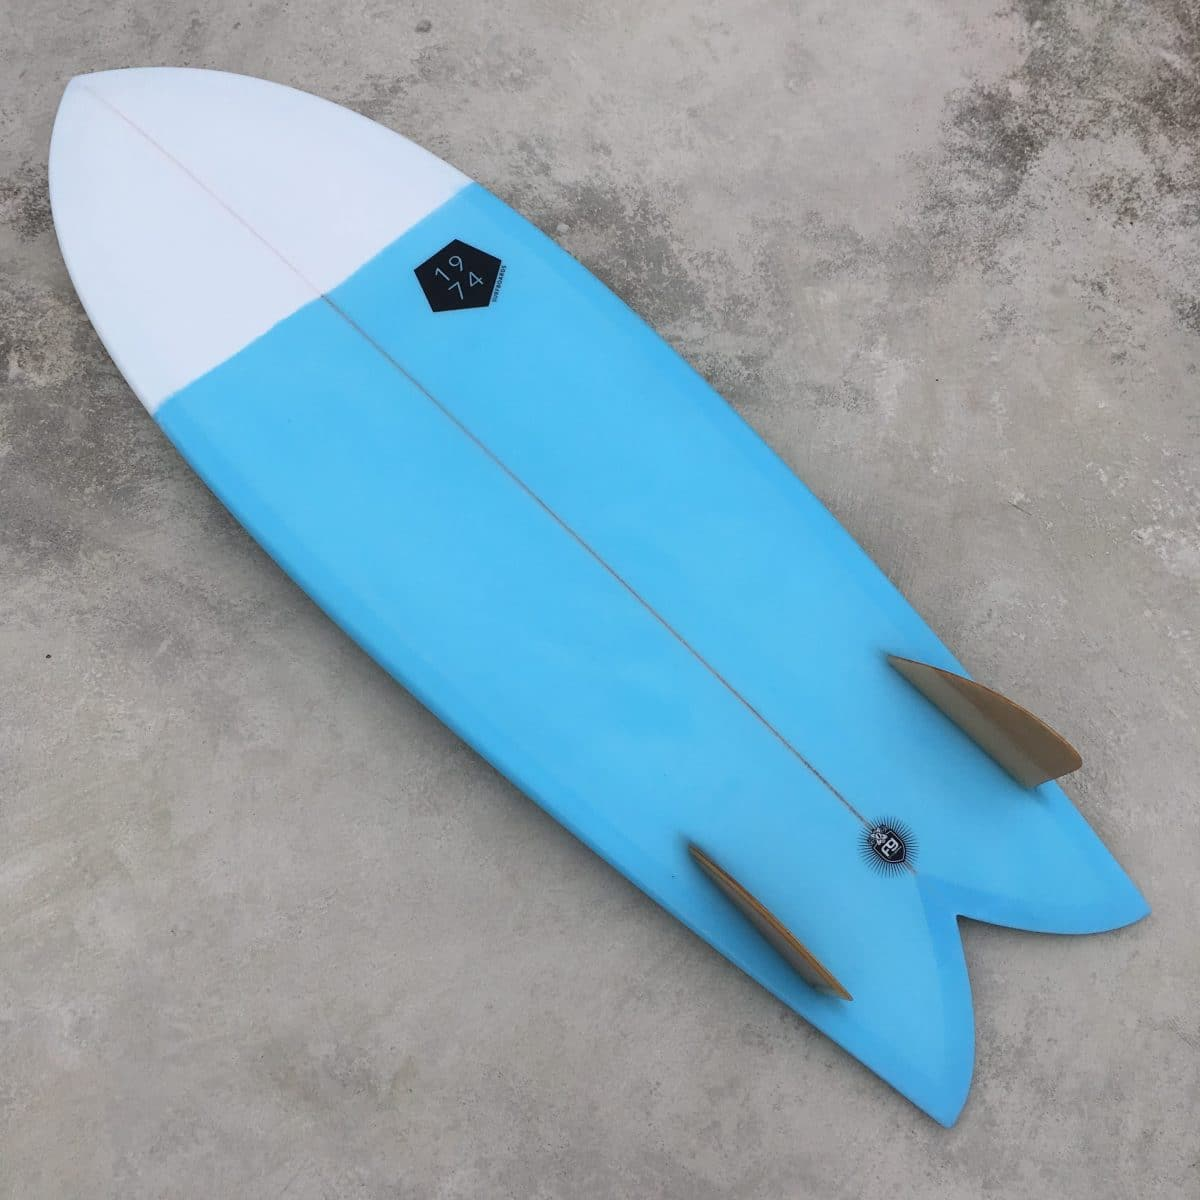 Prancha de surf fish retro biquilha 1974 Surfboards